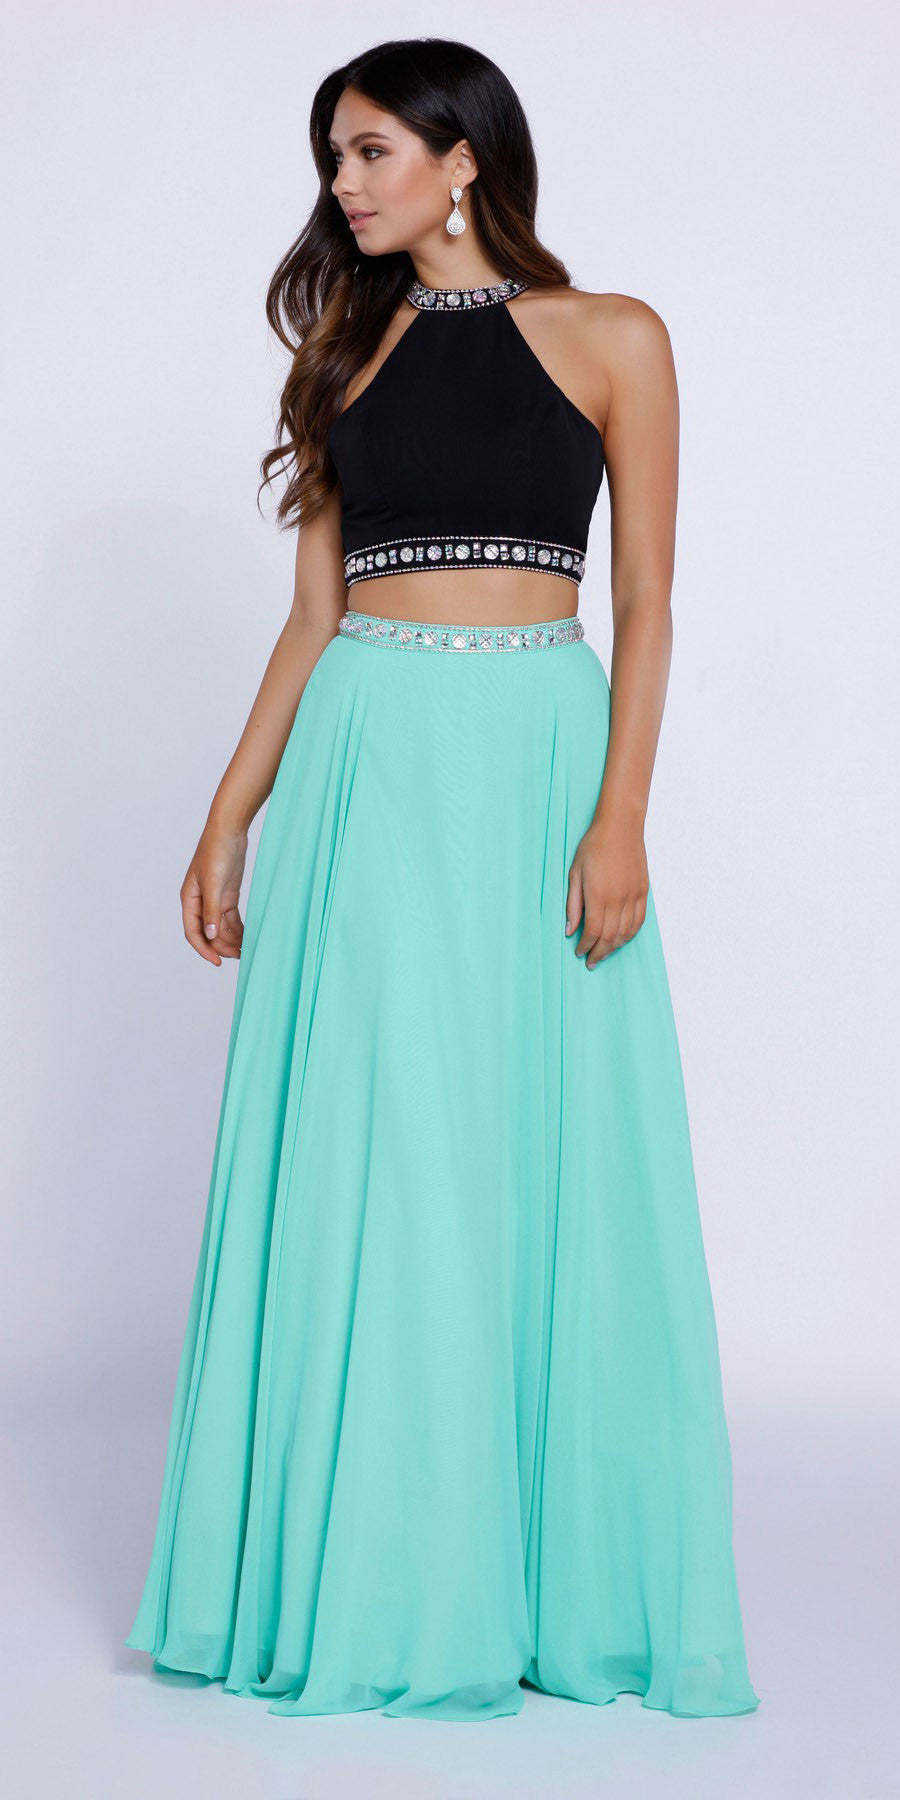 Mint and Black Homecoming Dresses